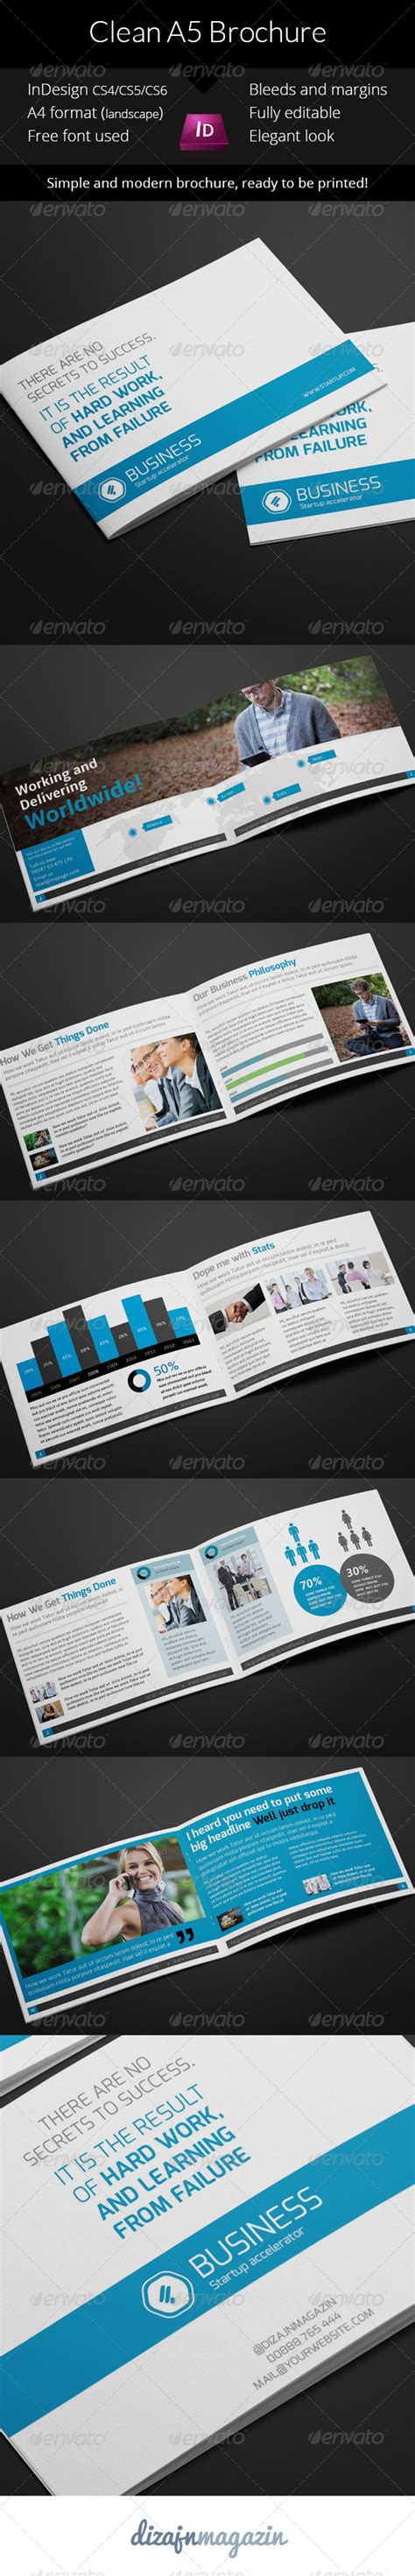 indesign template brochure a5 clean business a5 brochure indesign template graphicriver